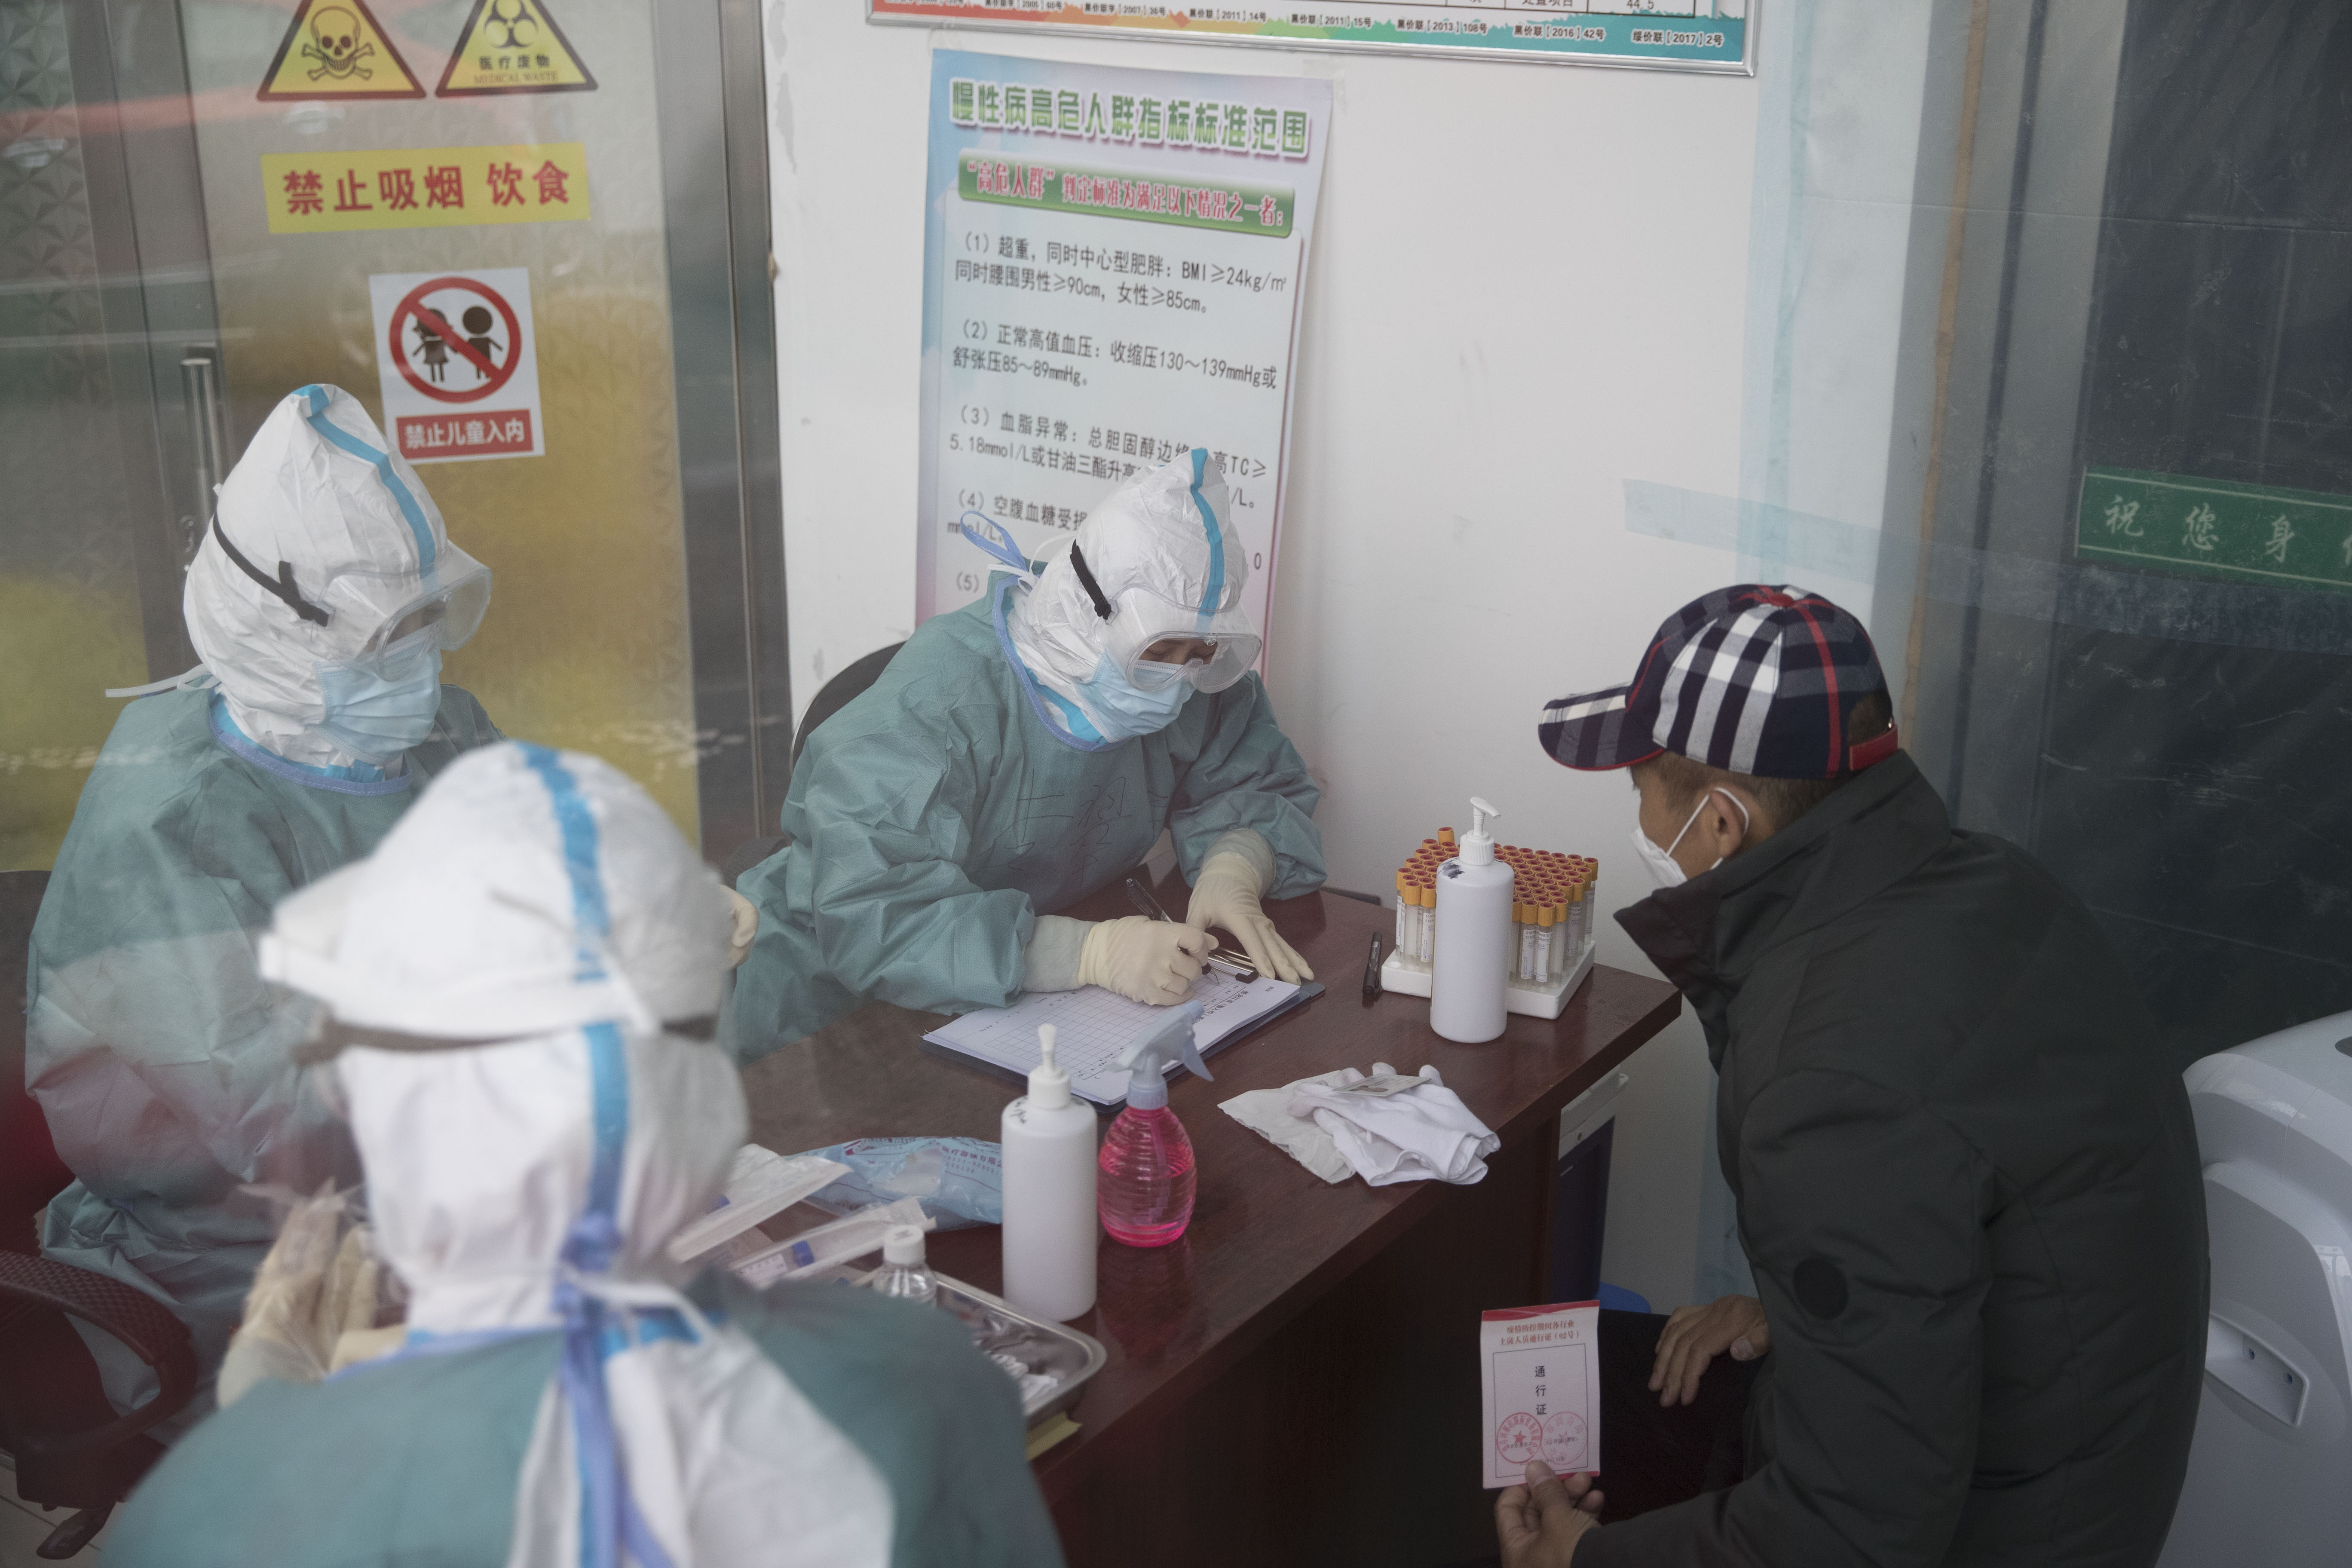 Chinese mainland reports 12 new confirmed COVID-19 cases